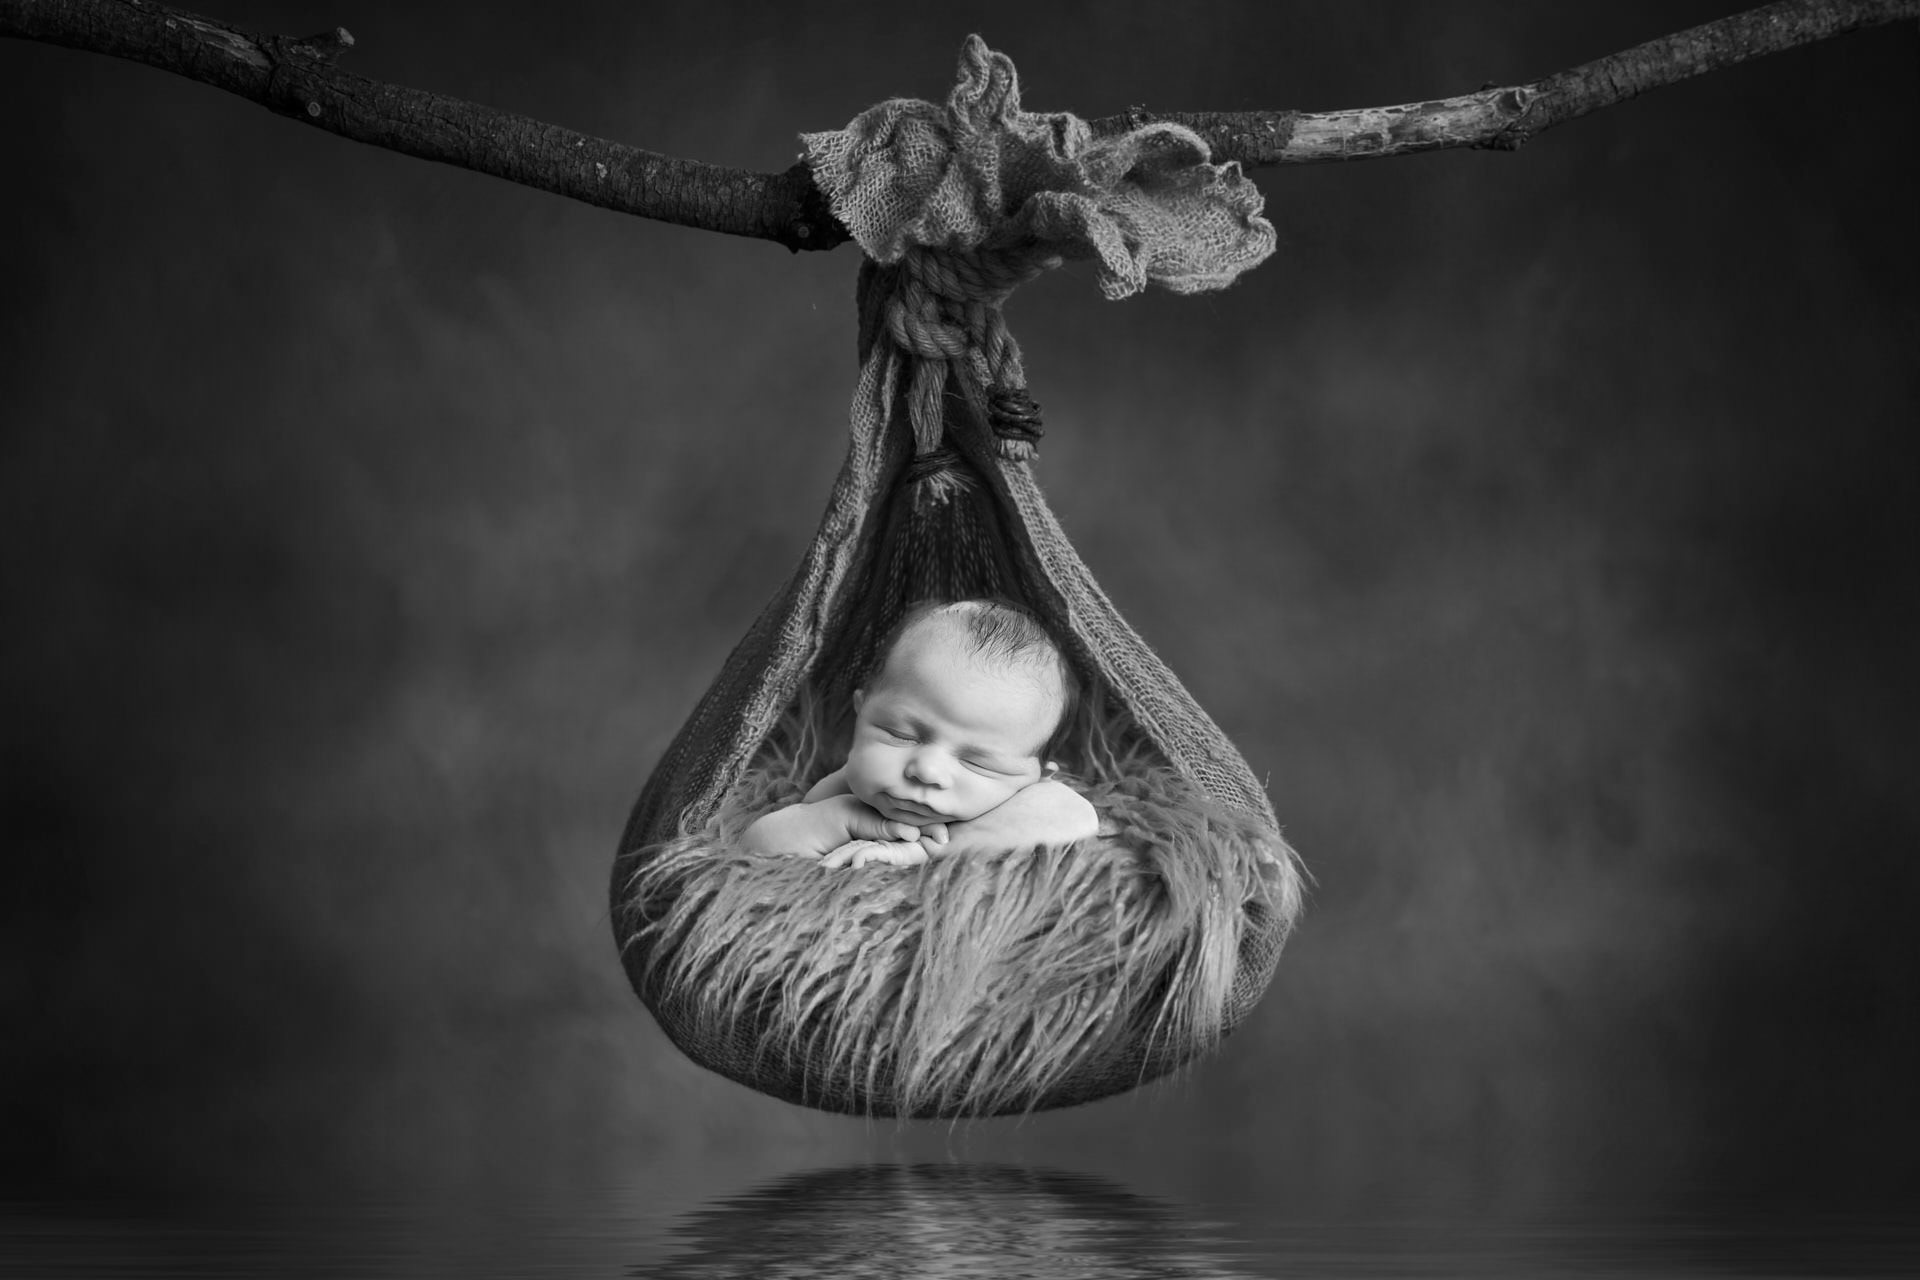 newborn-hanging-in-basket-bw